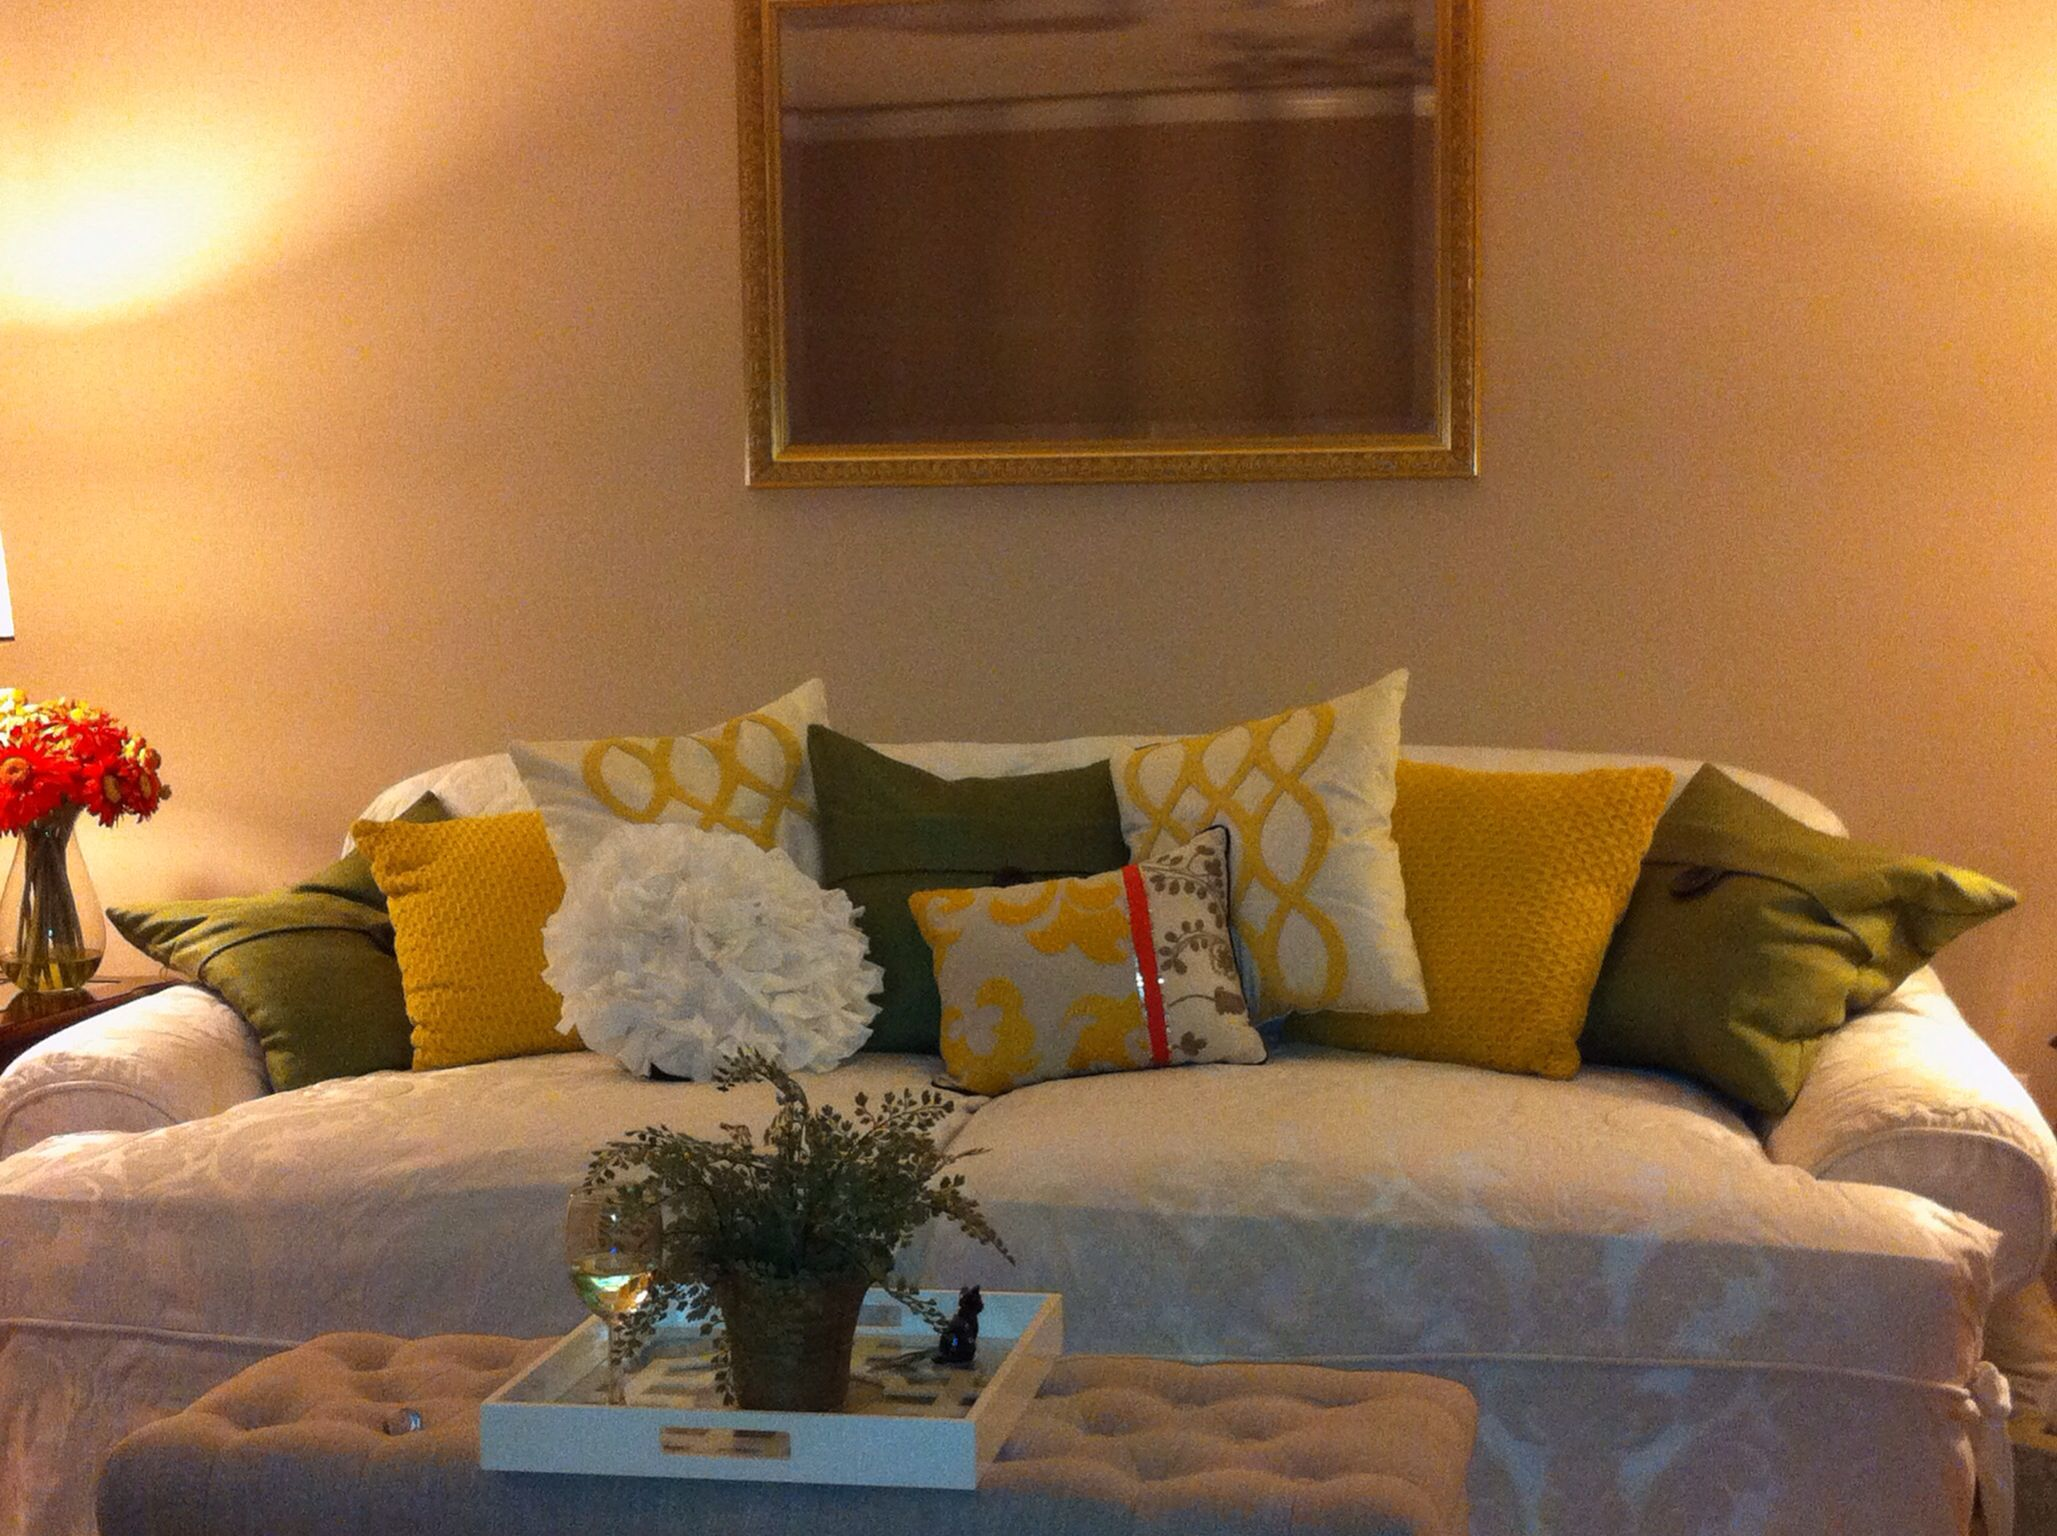 Updated Old Couch With New Pillows From Home Goods Slipcover From Surefit For The